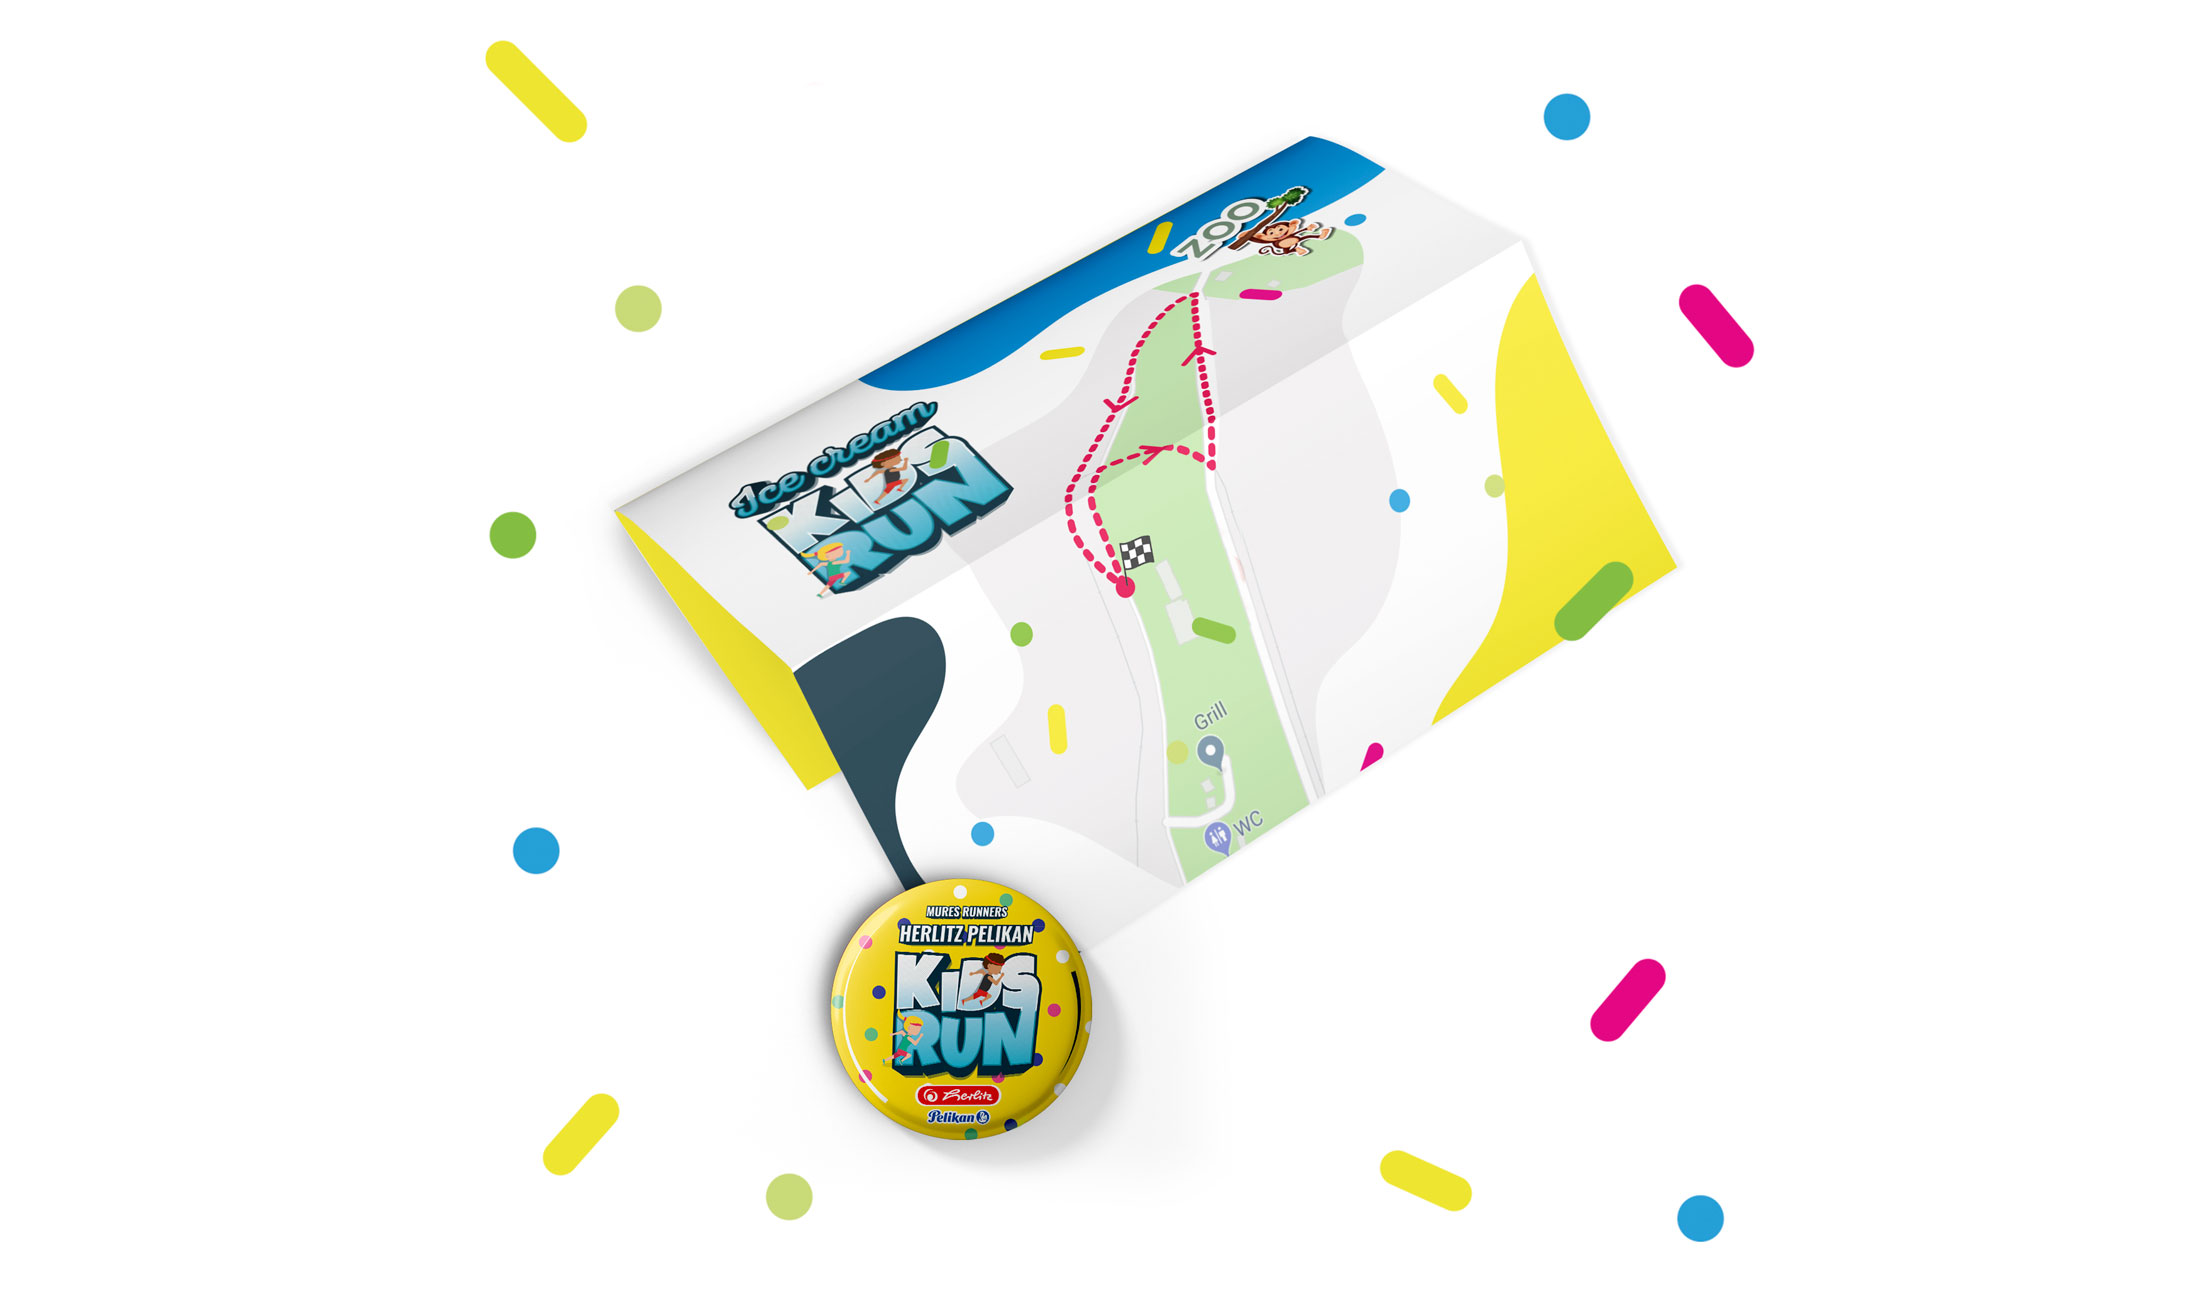 mures runners ice cream kids run romania mures branding affarit studio design firma dezvoltare soft